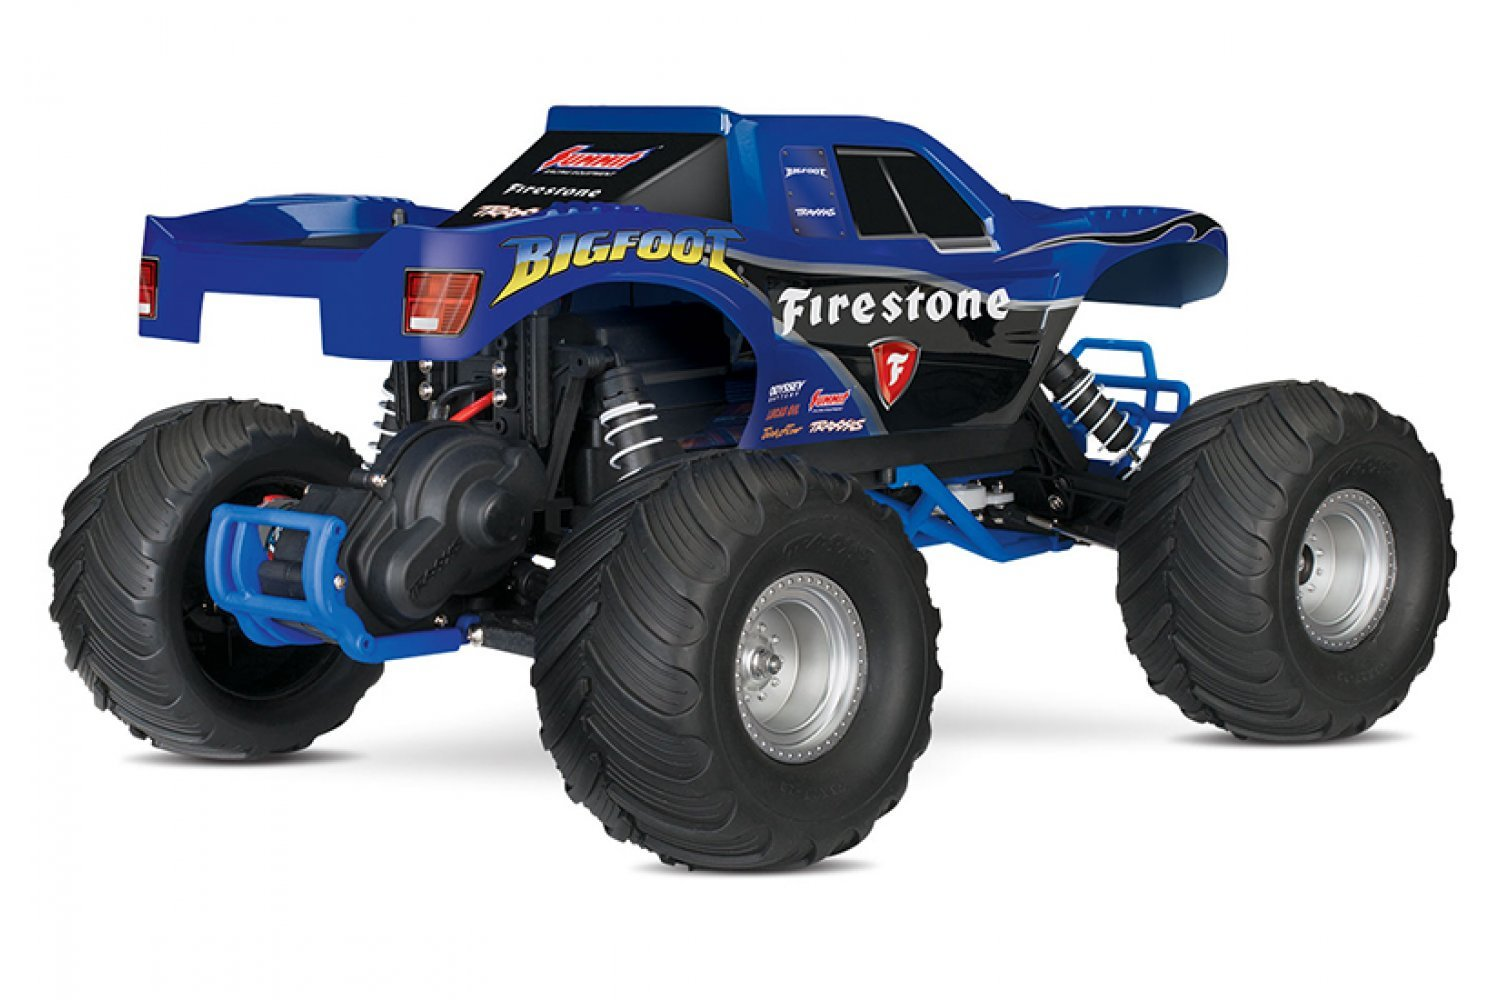 Traxxas 1/10 Bigfoot 2WD Electric Off Road RC Truck